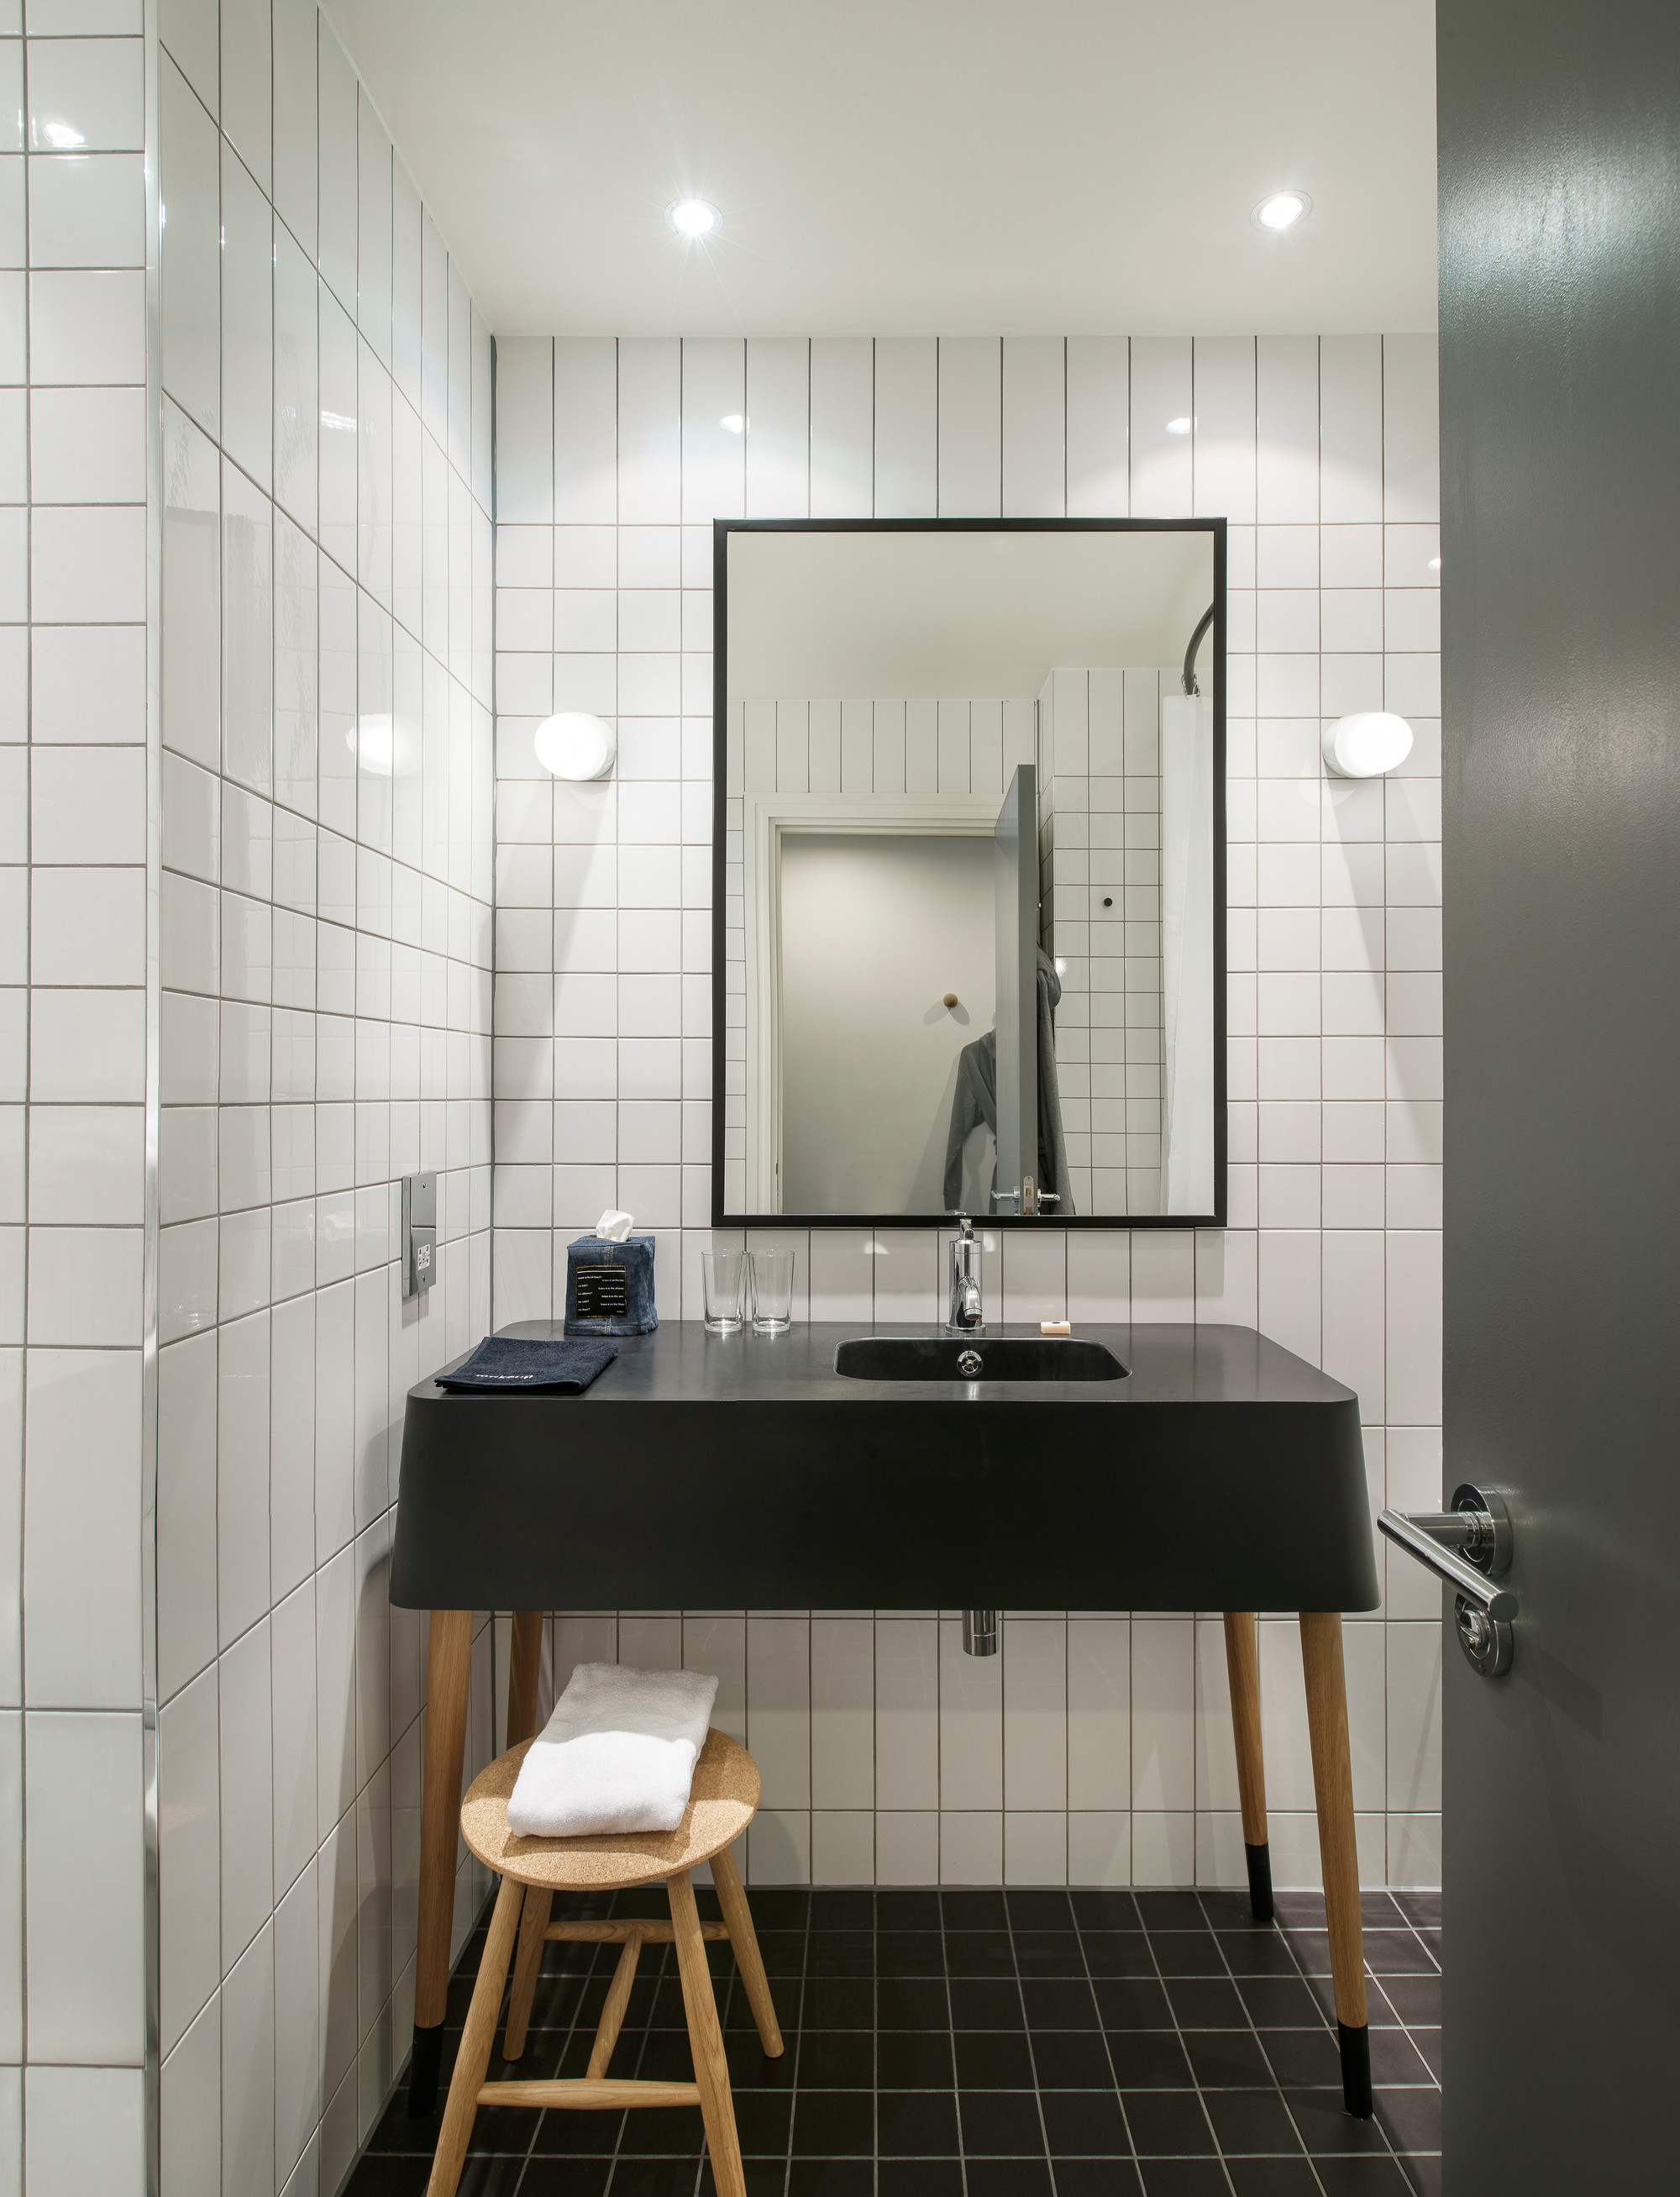 Gallery of Ace Hotel London / Universal Design Studio - 10